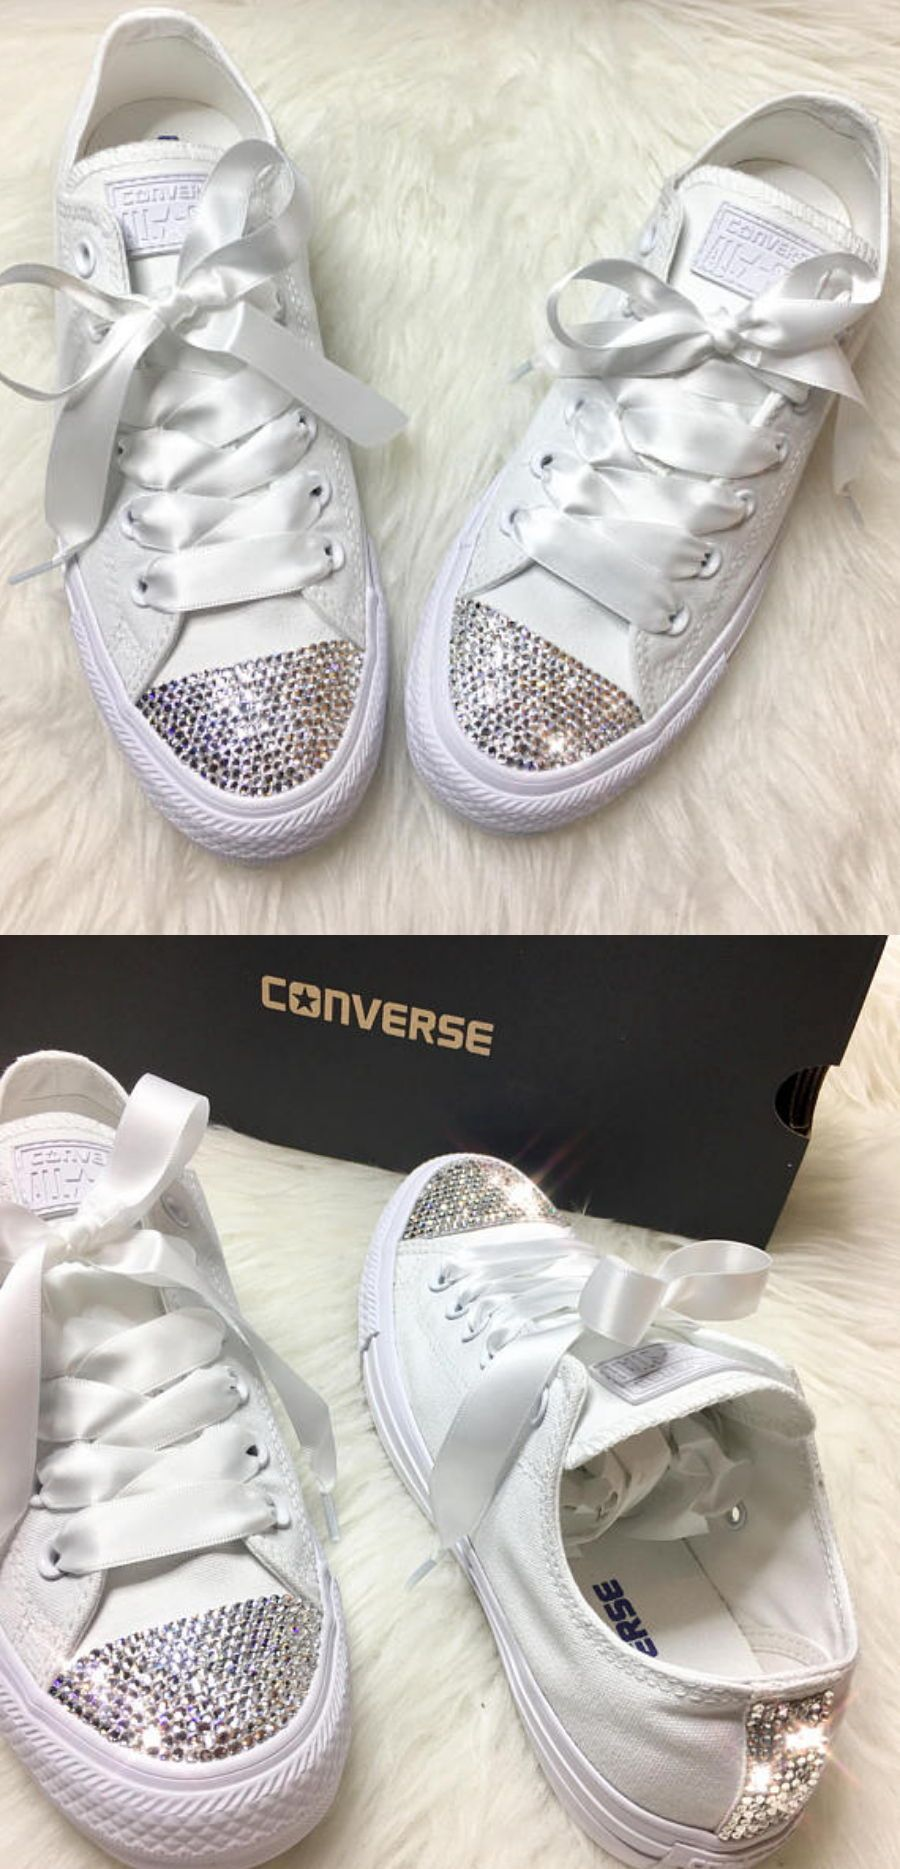 740cc0669e68 Swarovski Crystal CONVERSE Bling Women s Wedding crystal sneakers  wedding   sneakers  bridal  ad